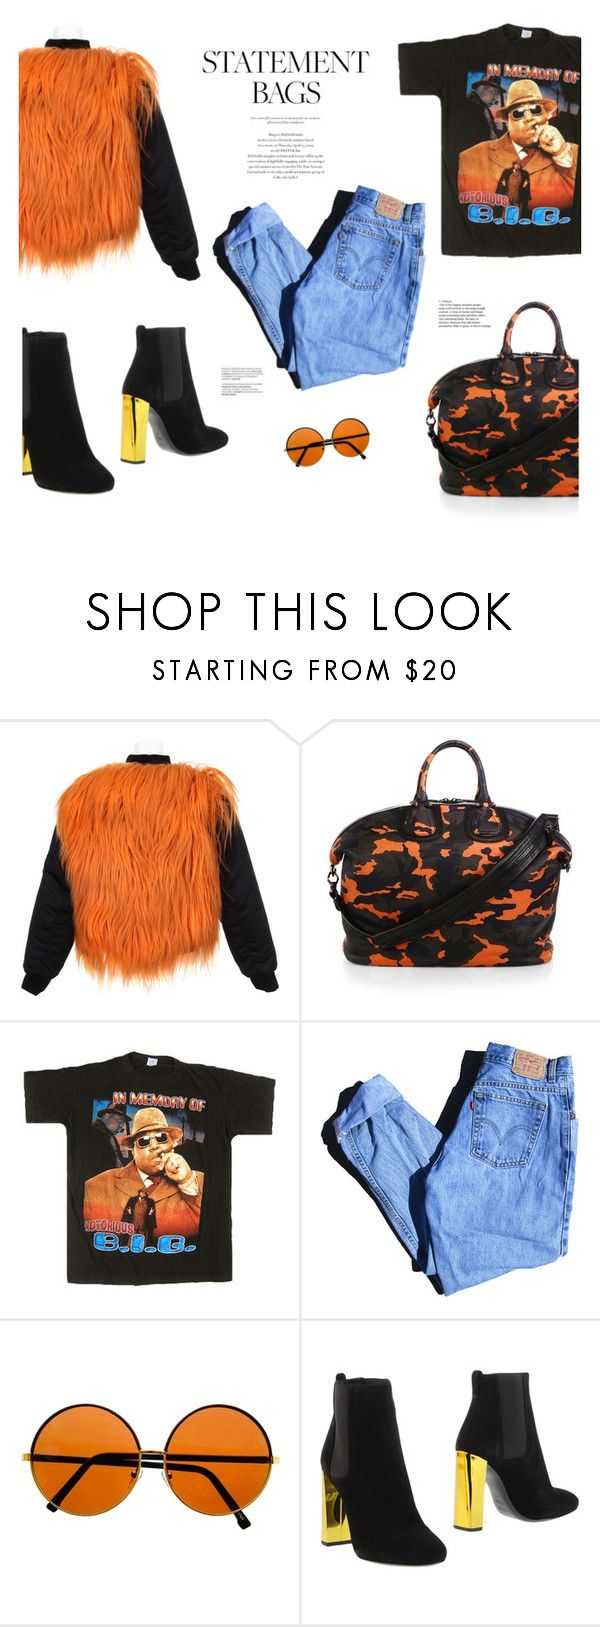 statement bag part ii by ginny mckenzie liked on polyvore featuring jeremy